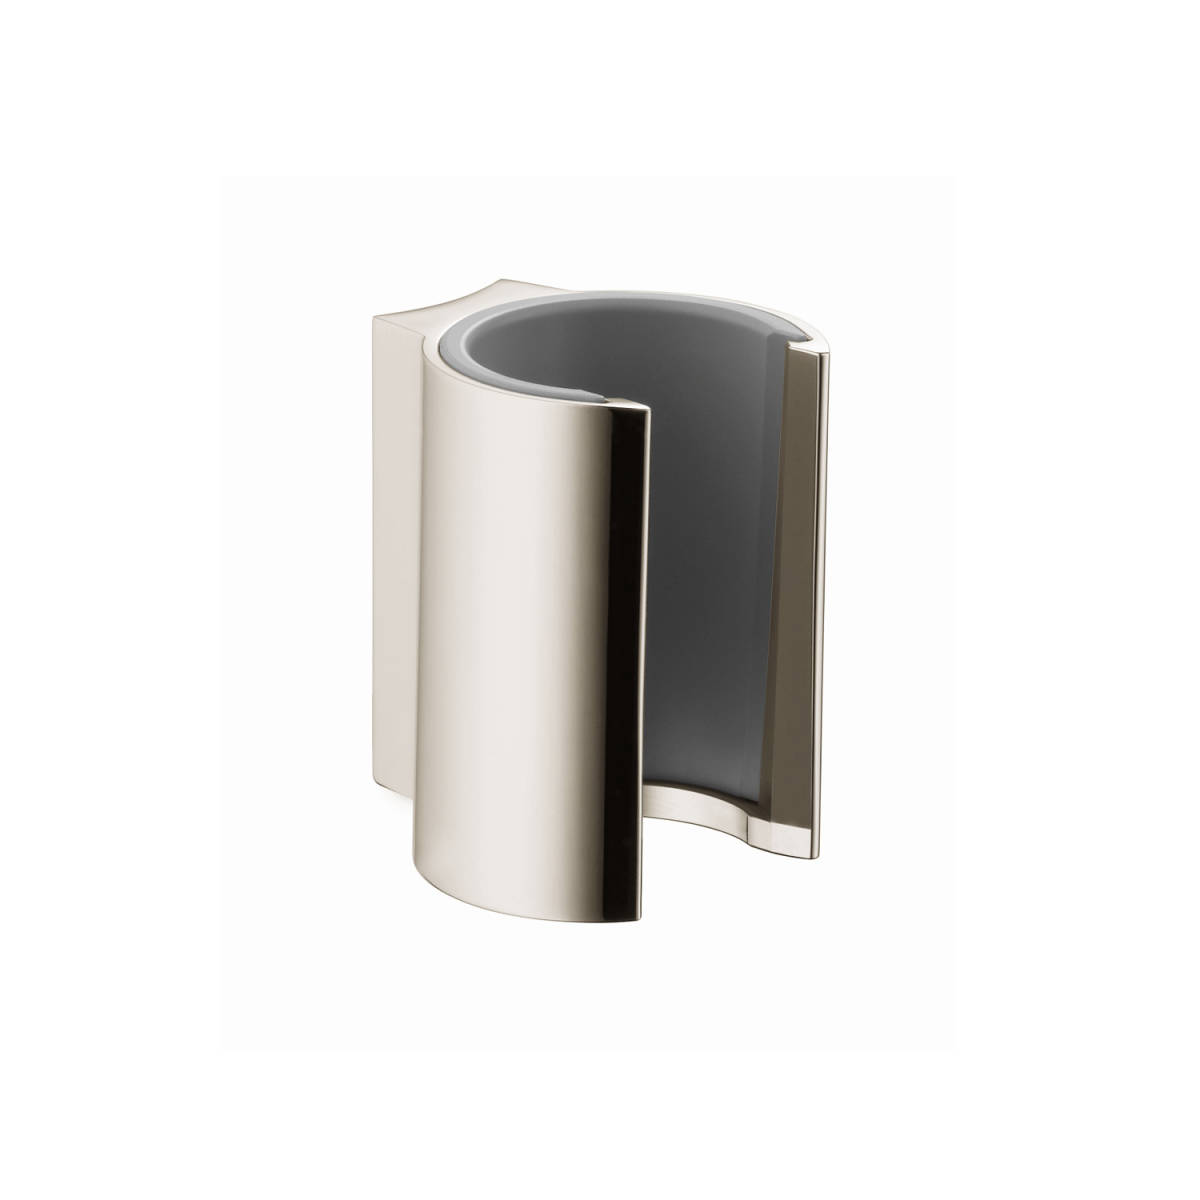 AXOR Starck Handshower Porter, brushed nickel, 27515820